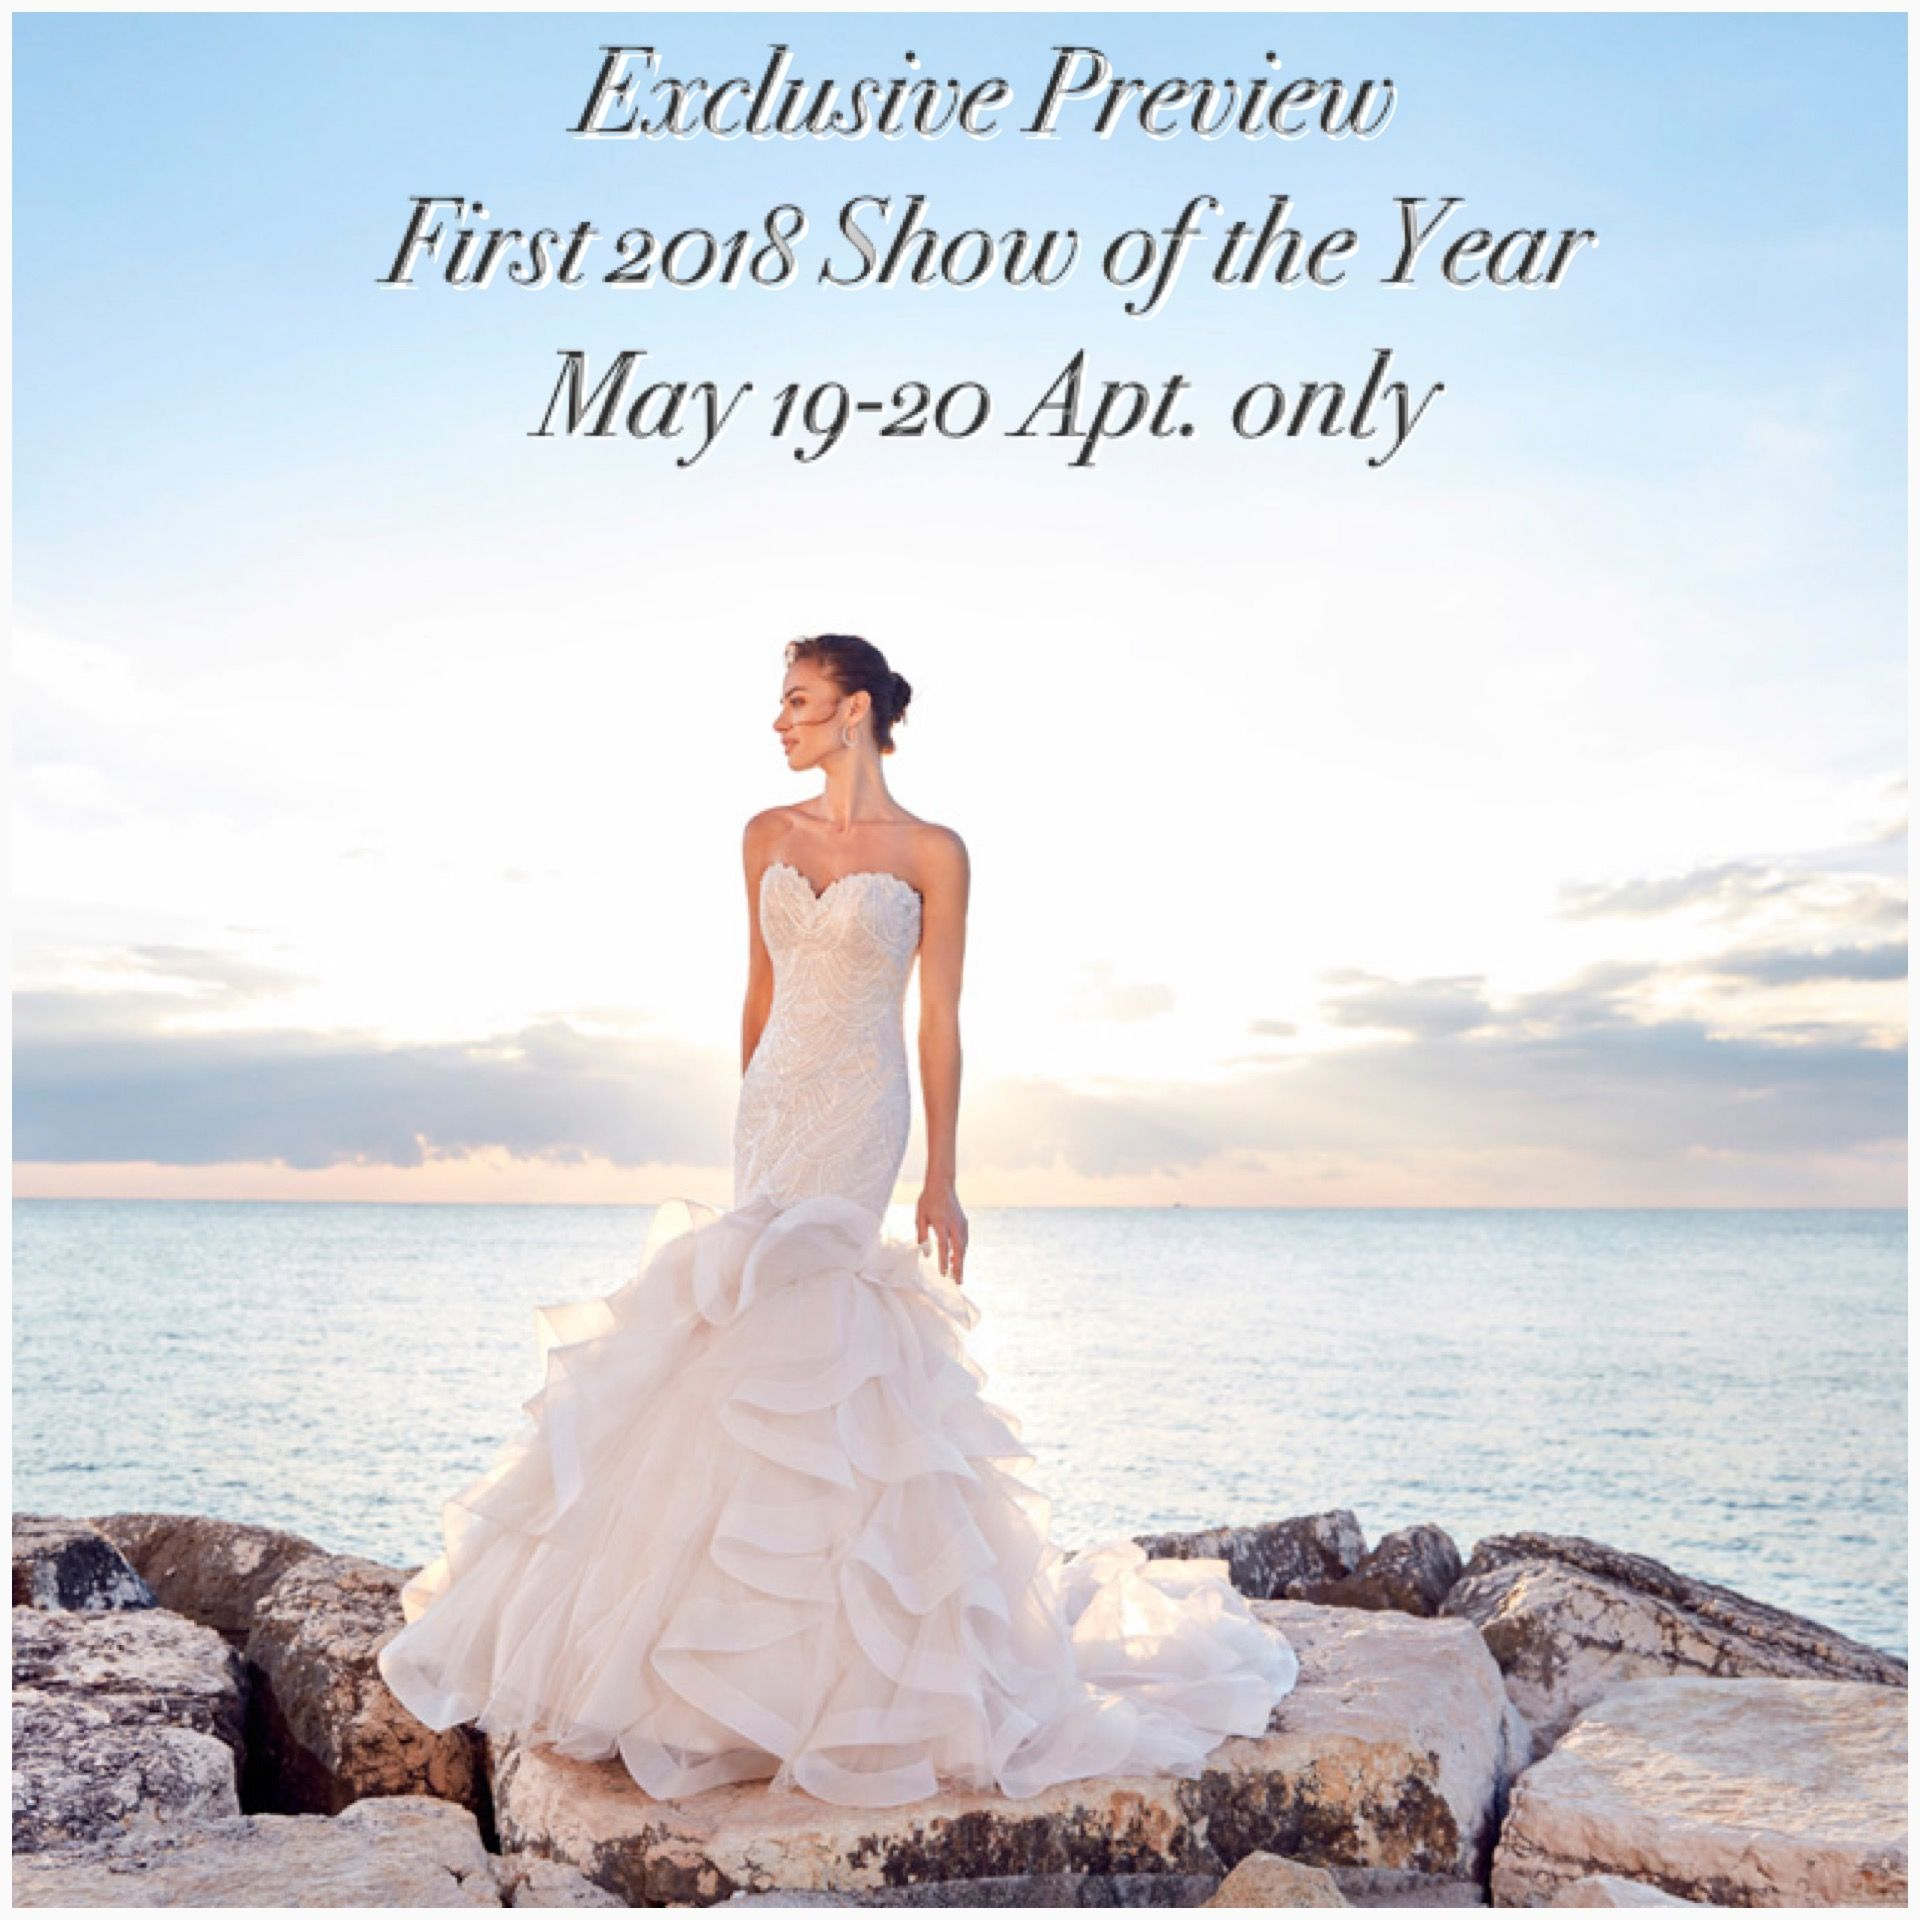 Check out the new eddy k dreams bridal collection at the first